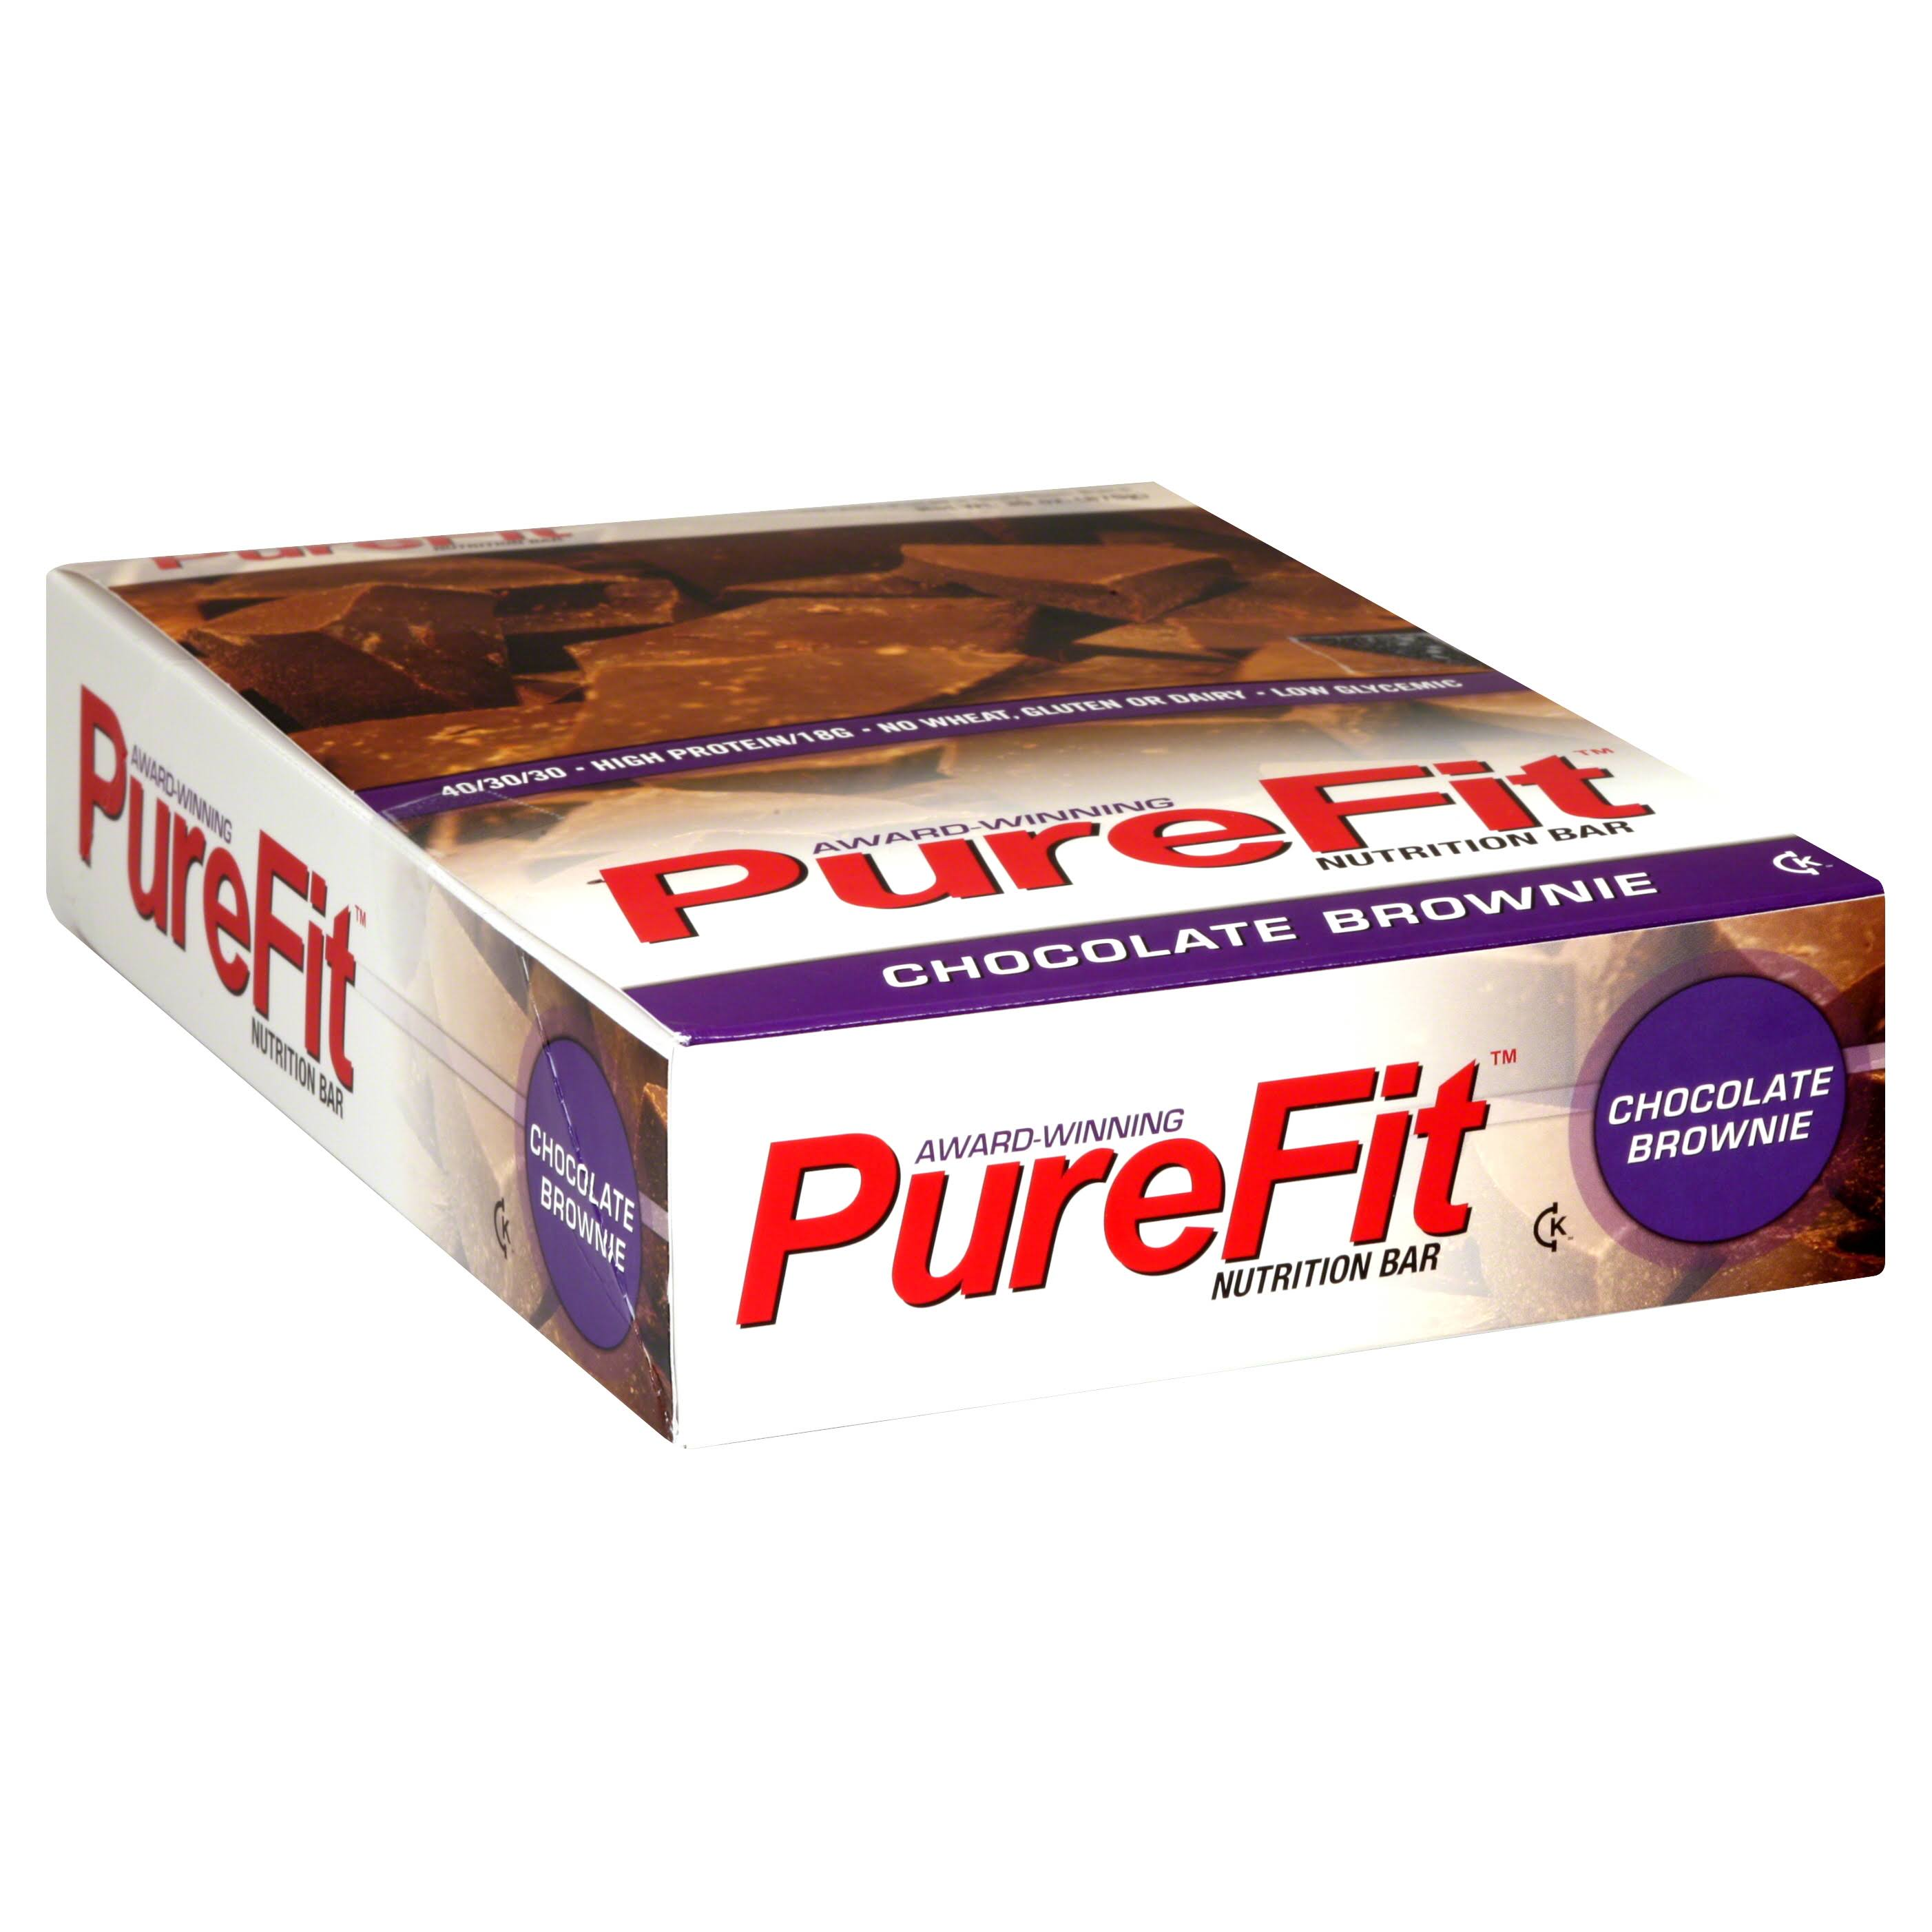 Pure Fit Nutrition Bar, Chocolate Brownie - 15 pack, 2 oz bars